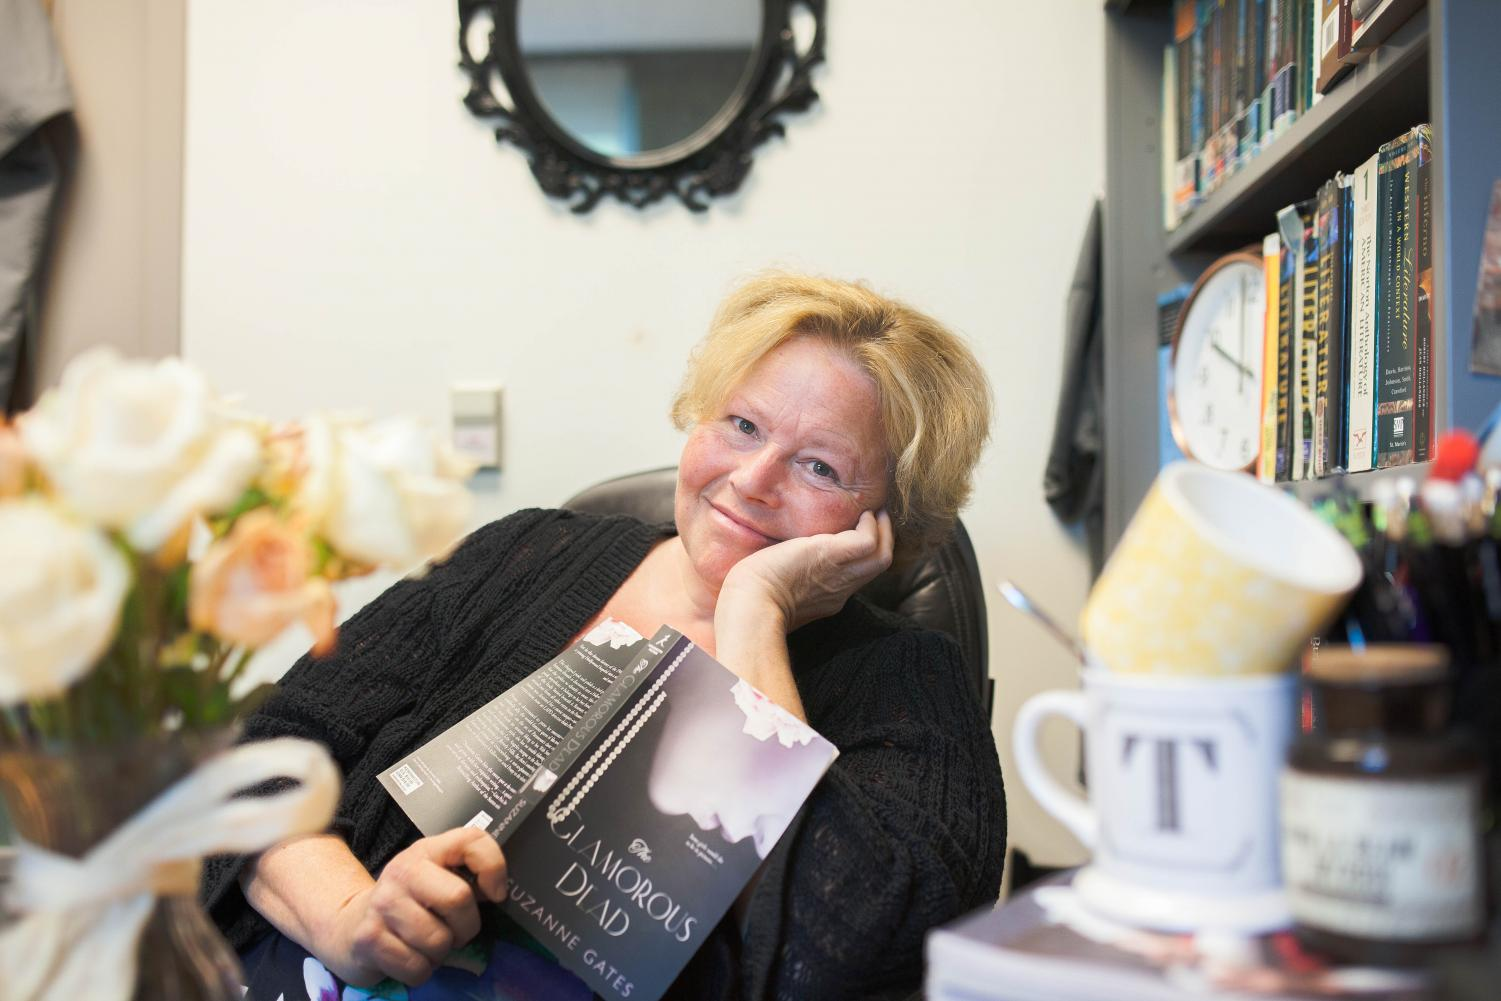 English professor prepares to debut her first novel